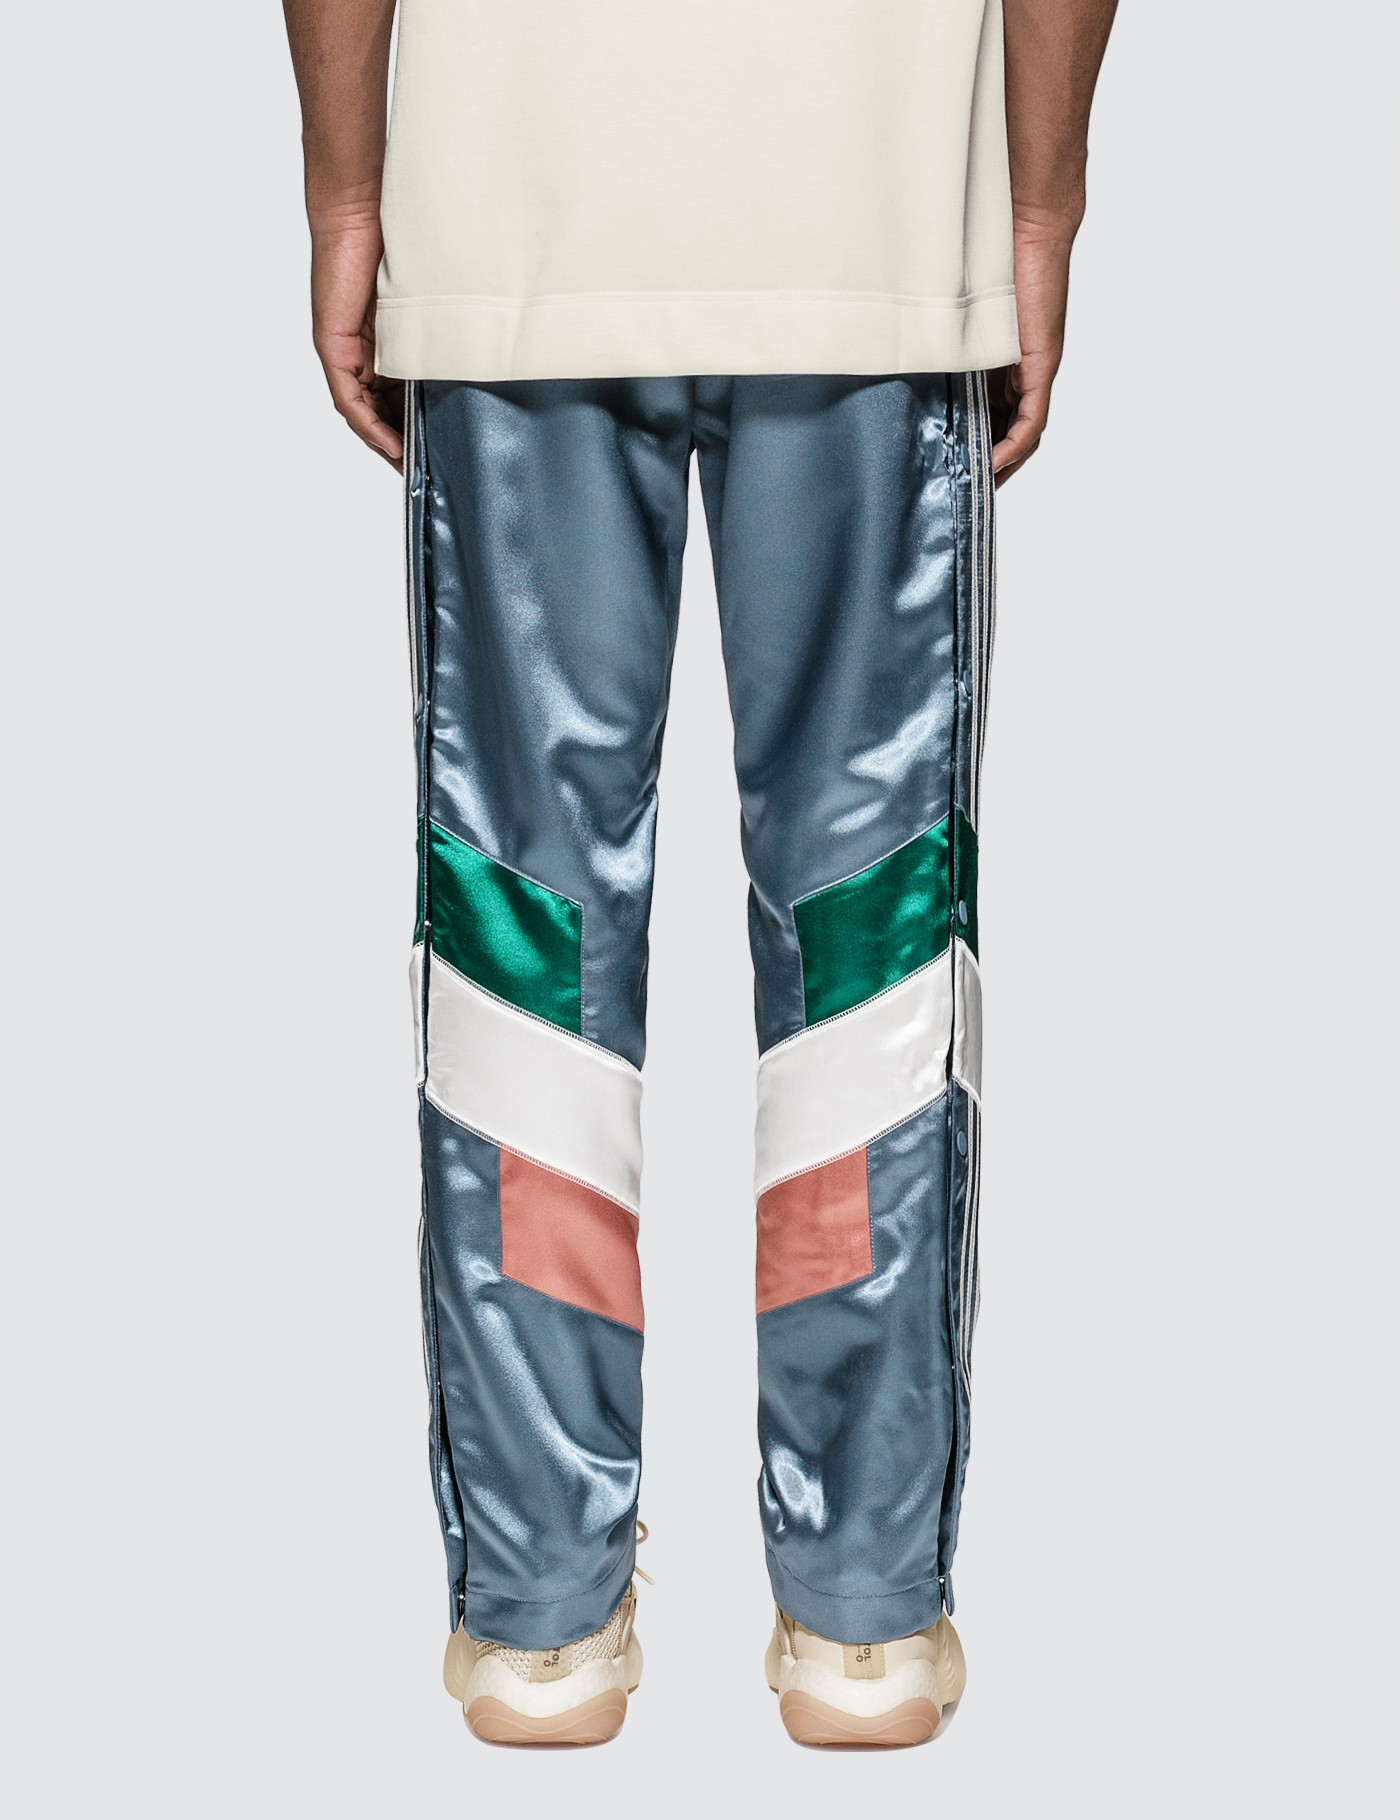 da8264be7b26 Jual Adidas Originals Bristol Studio x Adidas Pants - 100% Original ...